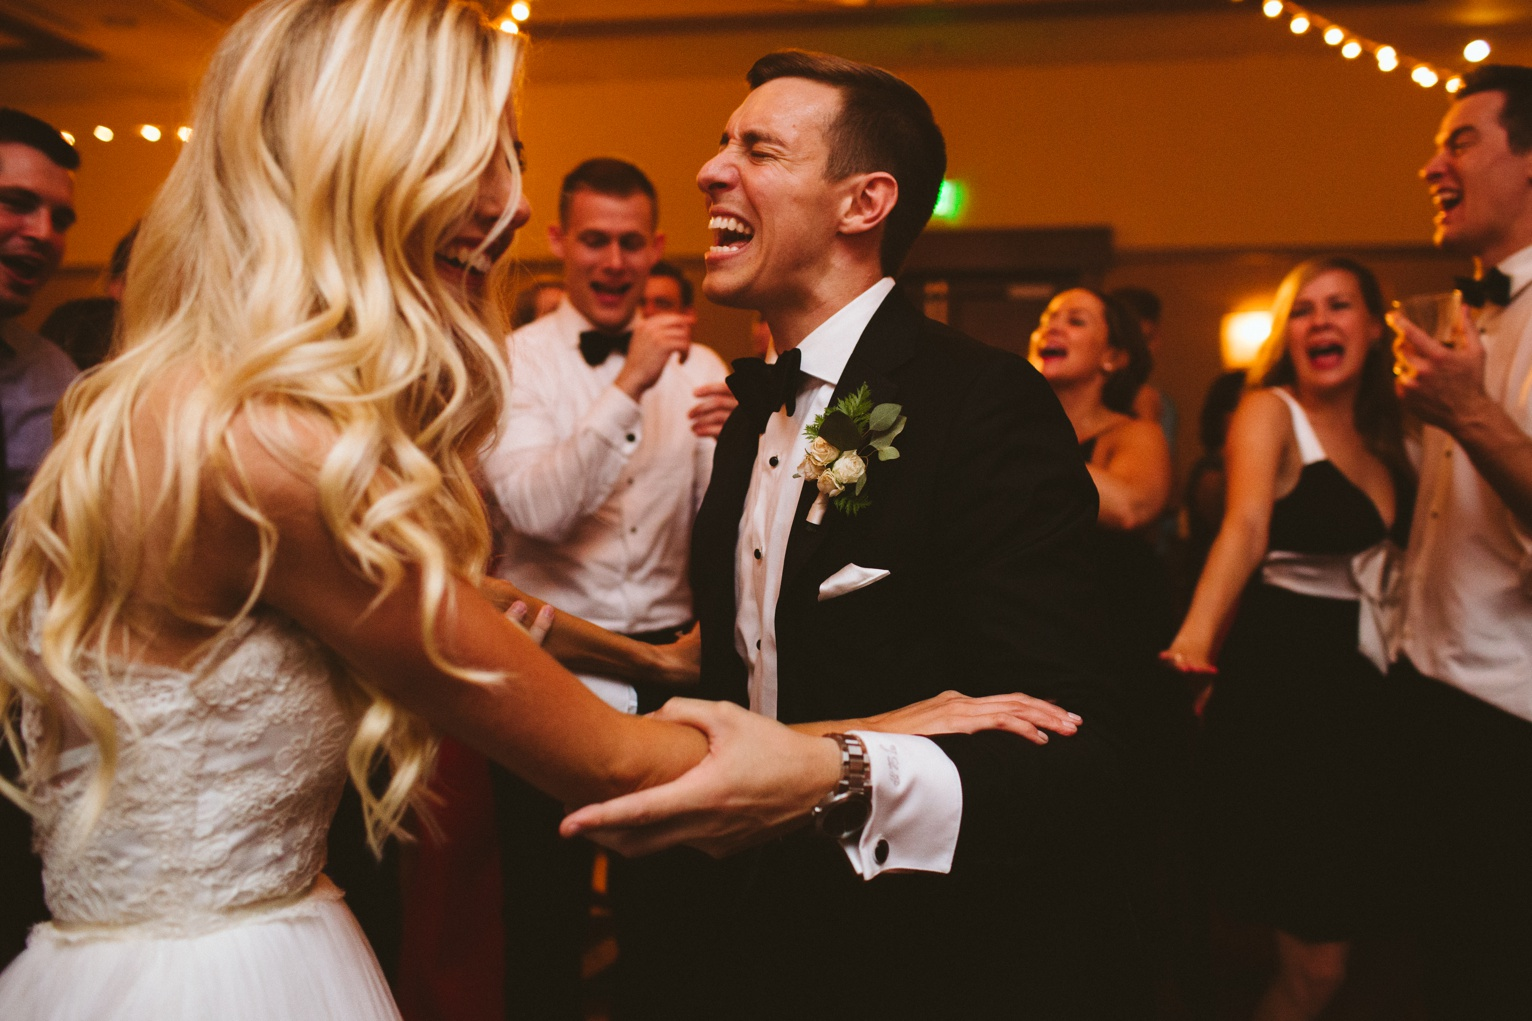 Dreamtownco.com_blog_Jordan&Lindsey_Wedding__0179.jpg